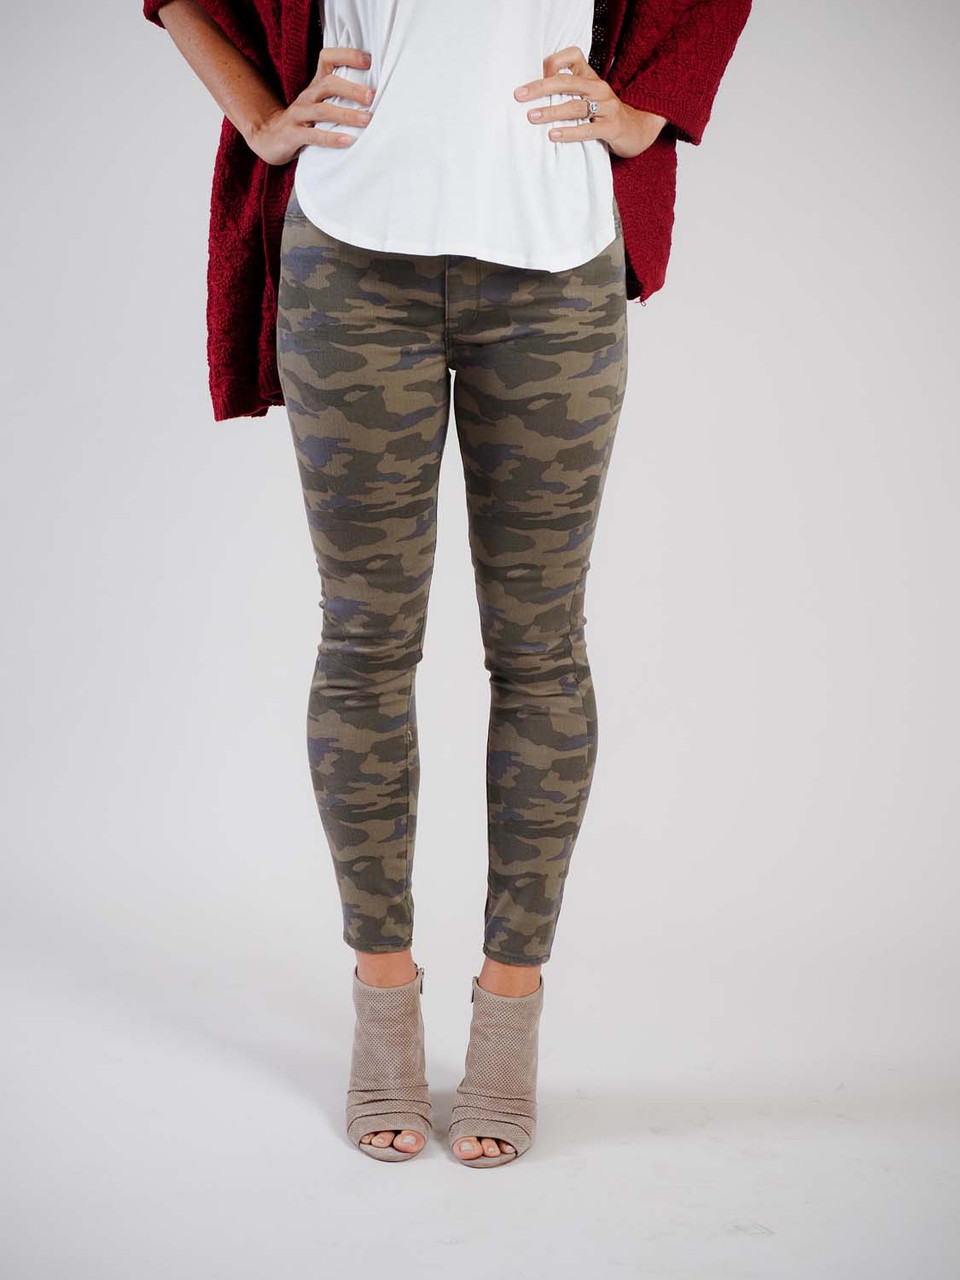 articles of society camouflage jeans